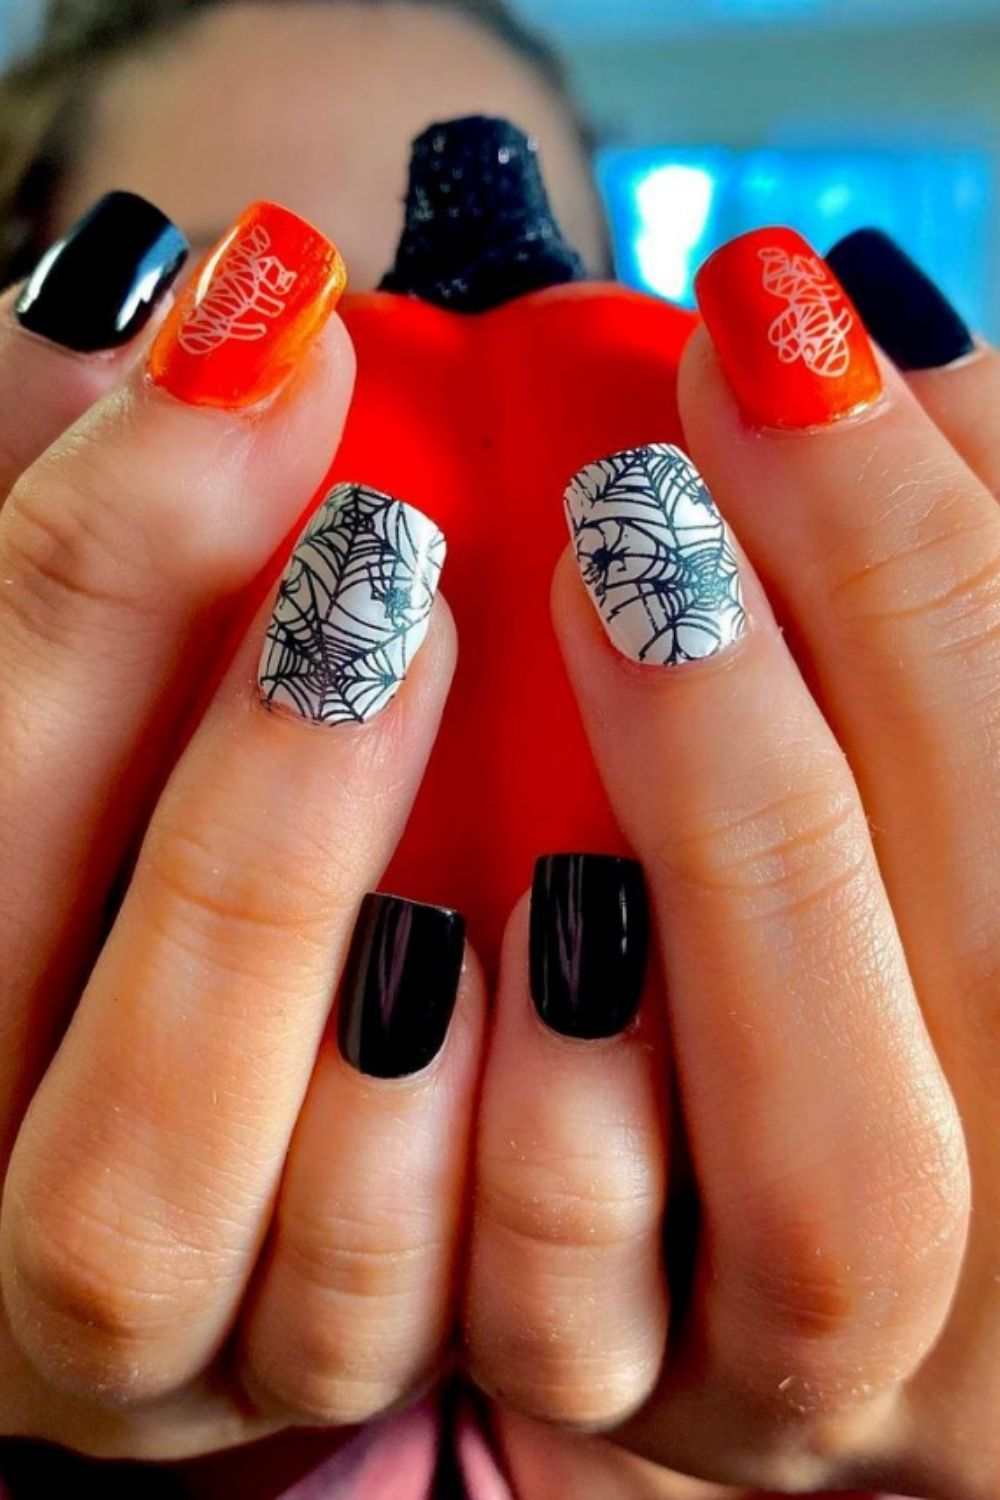 Halloween nails | the best fall nails ideas for spooky Halloween 2021